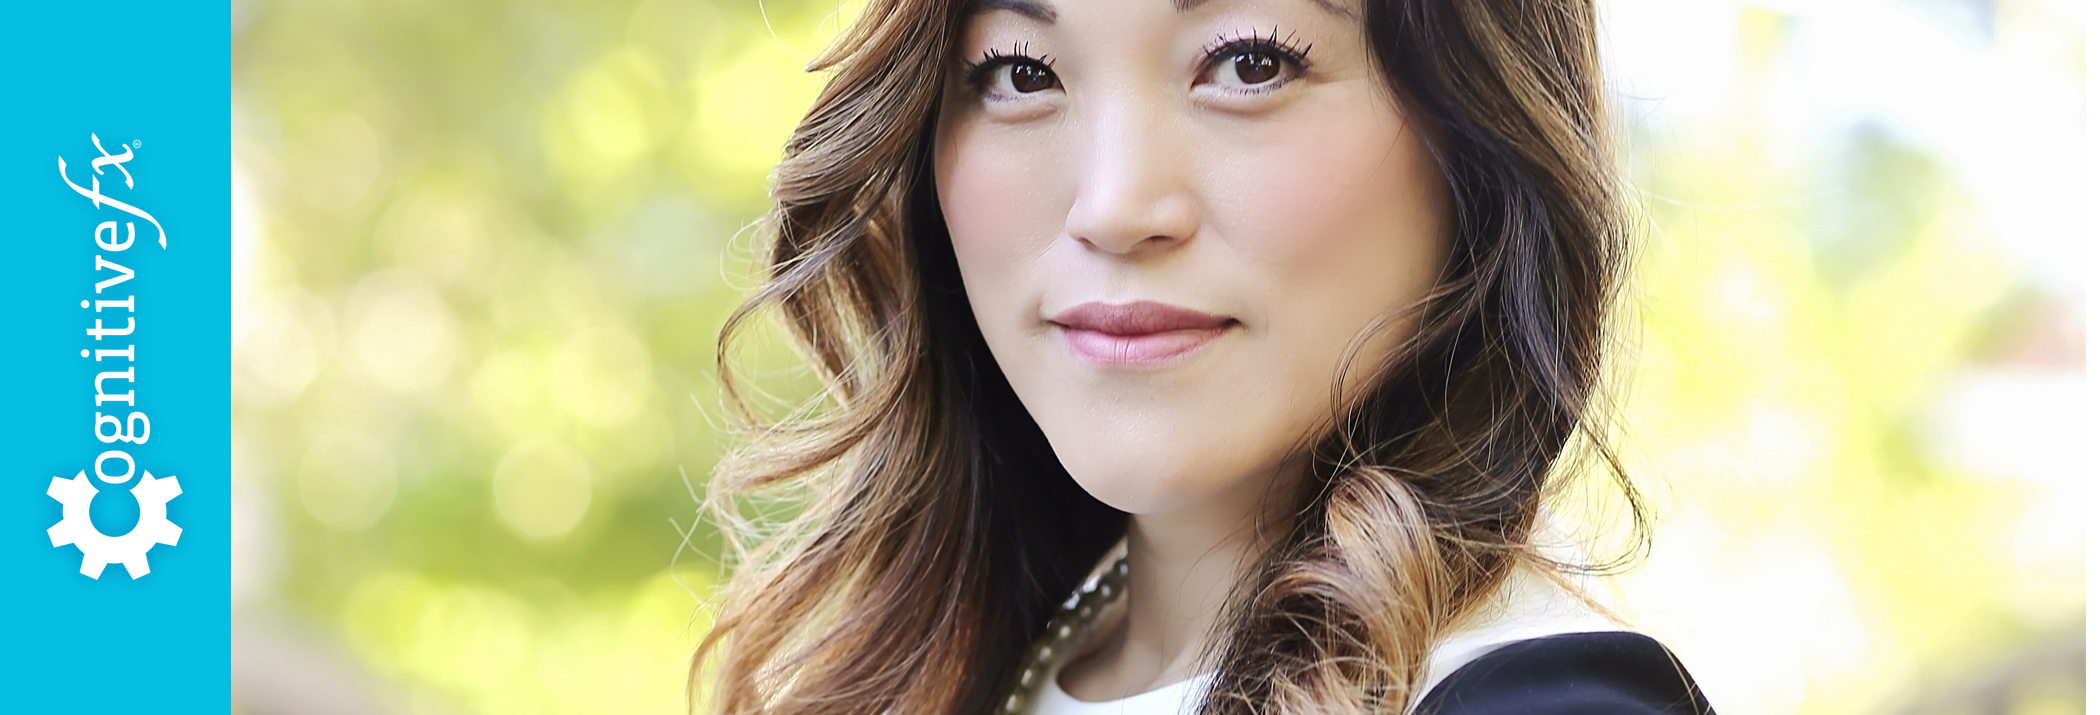 Dr. Alina Fong, Director of Cognitive FX in Utah, Joins the U.S. BIA Public PolicyCommittee